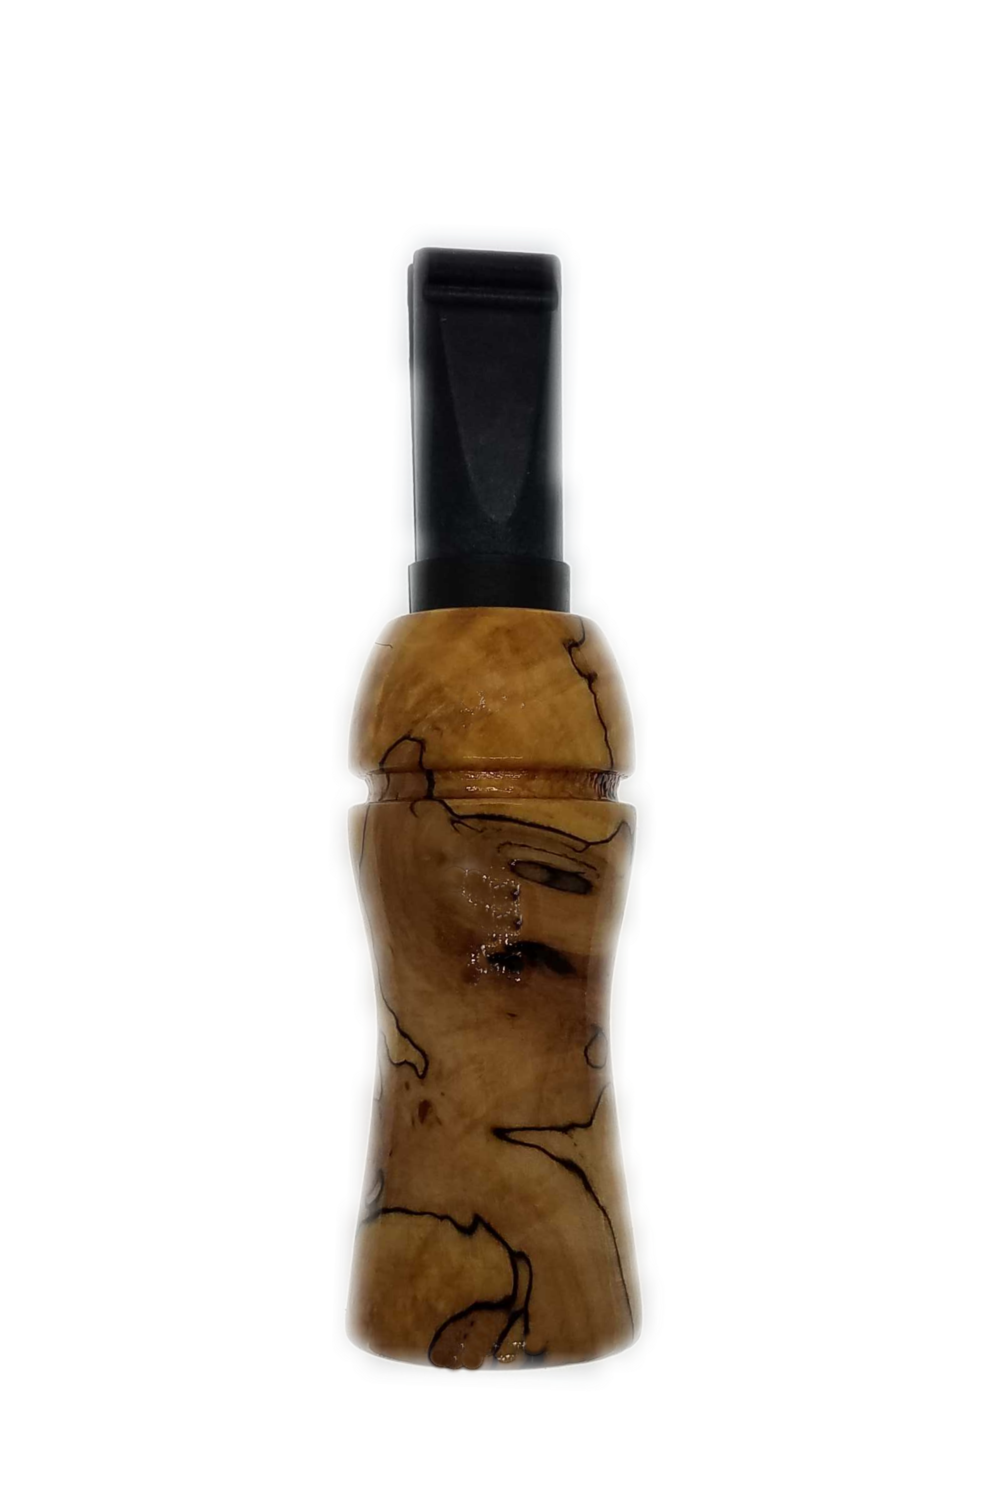 Crow Call Hand-turned Spalted Maple #2